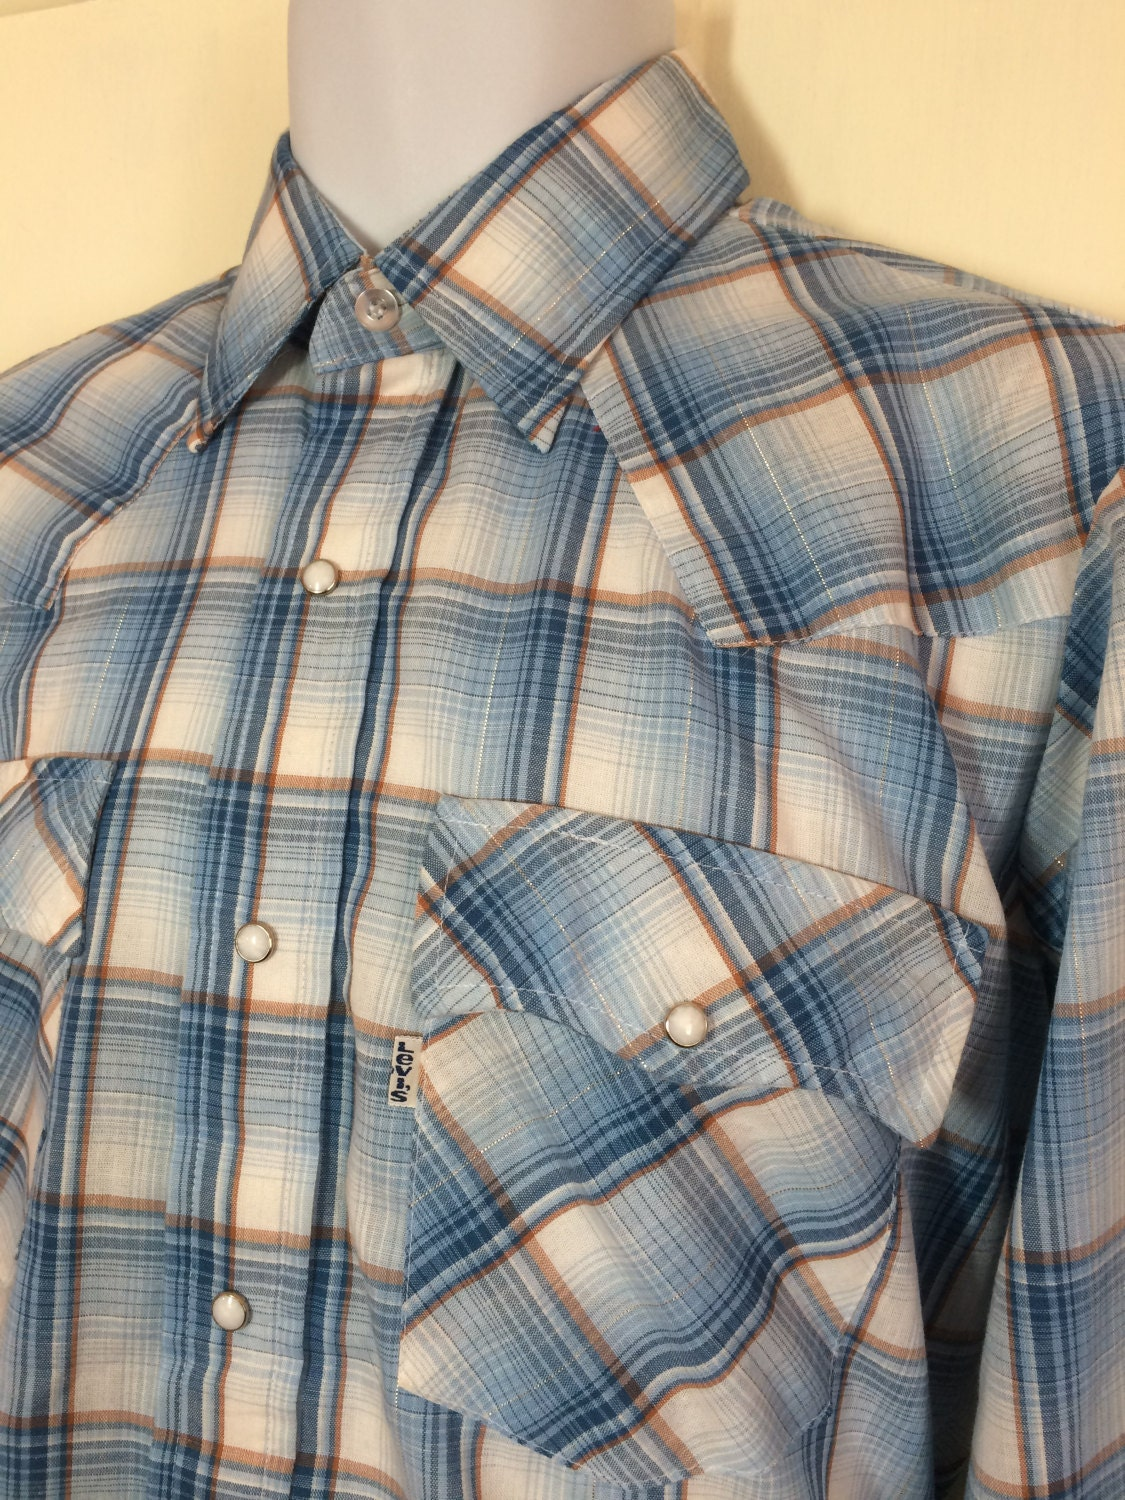 Light blue and white western shirt with metallic silver thread.